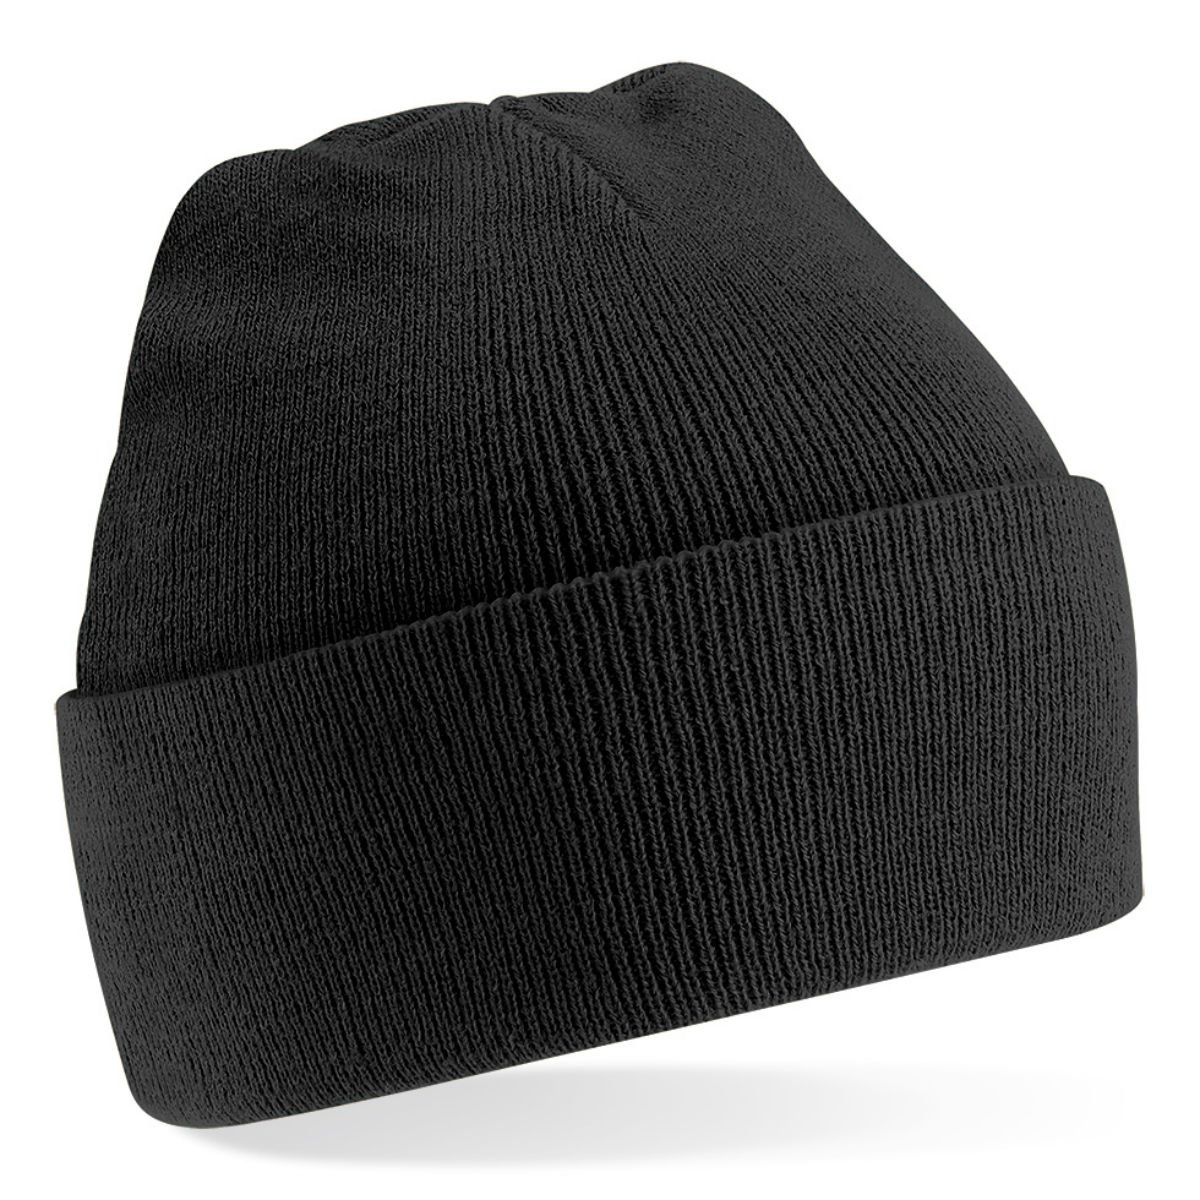 Beechfield Unisex Baseball Cap Turn-up Beanie product image